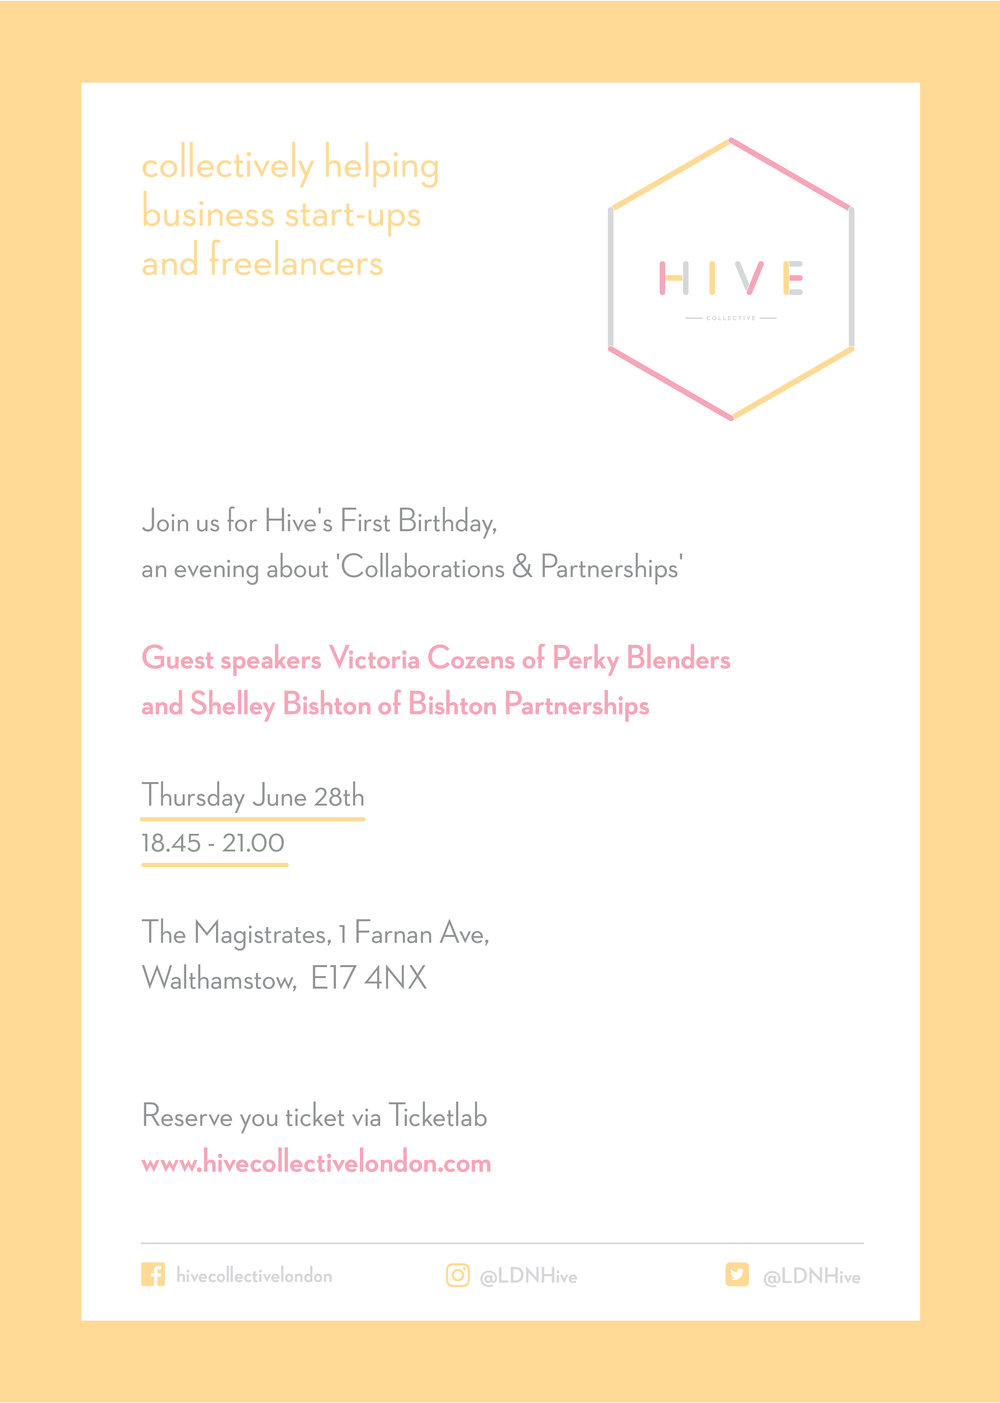 June 28th 2018: Hive's first birthday, an evening about 'Collaborations & Partnerships'   Join us for an evening of networking and raise a toast for Hive Collective's first birthday.  Plus find out about partnerships and collaborations from owner of  Perky Blenders  Victoria Cozens, and gain marketing insights from Shelley Bishton of Bishton Partnerships. Book  here .